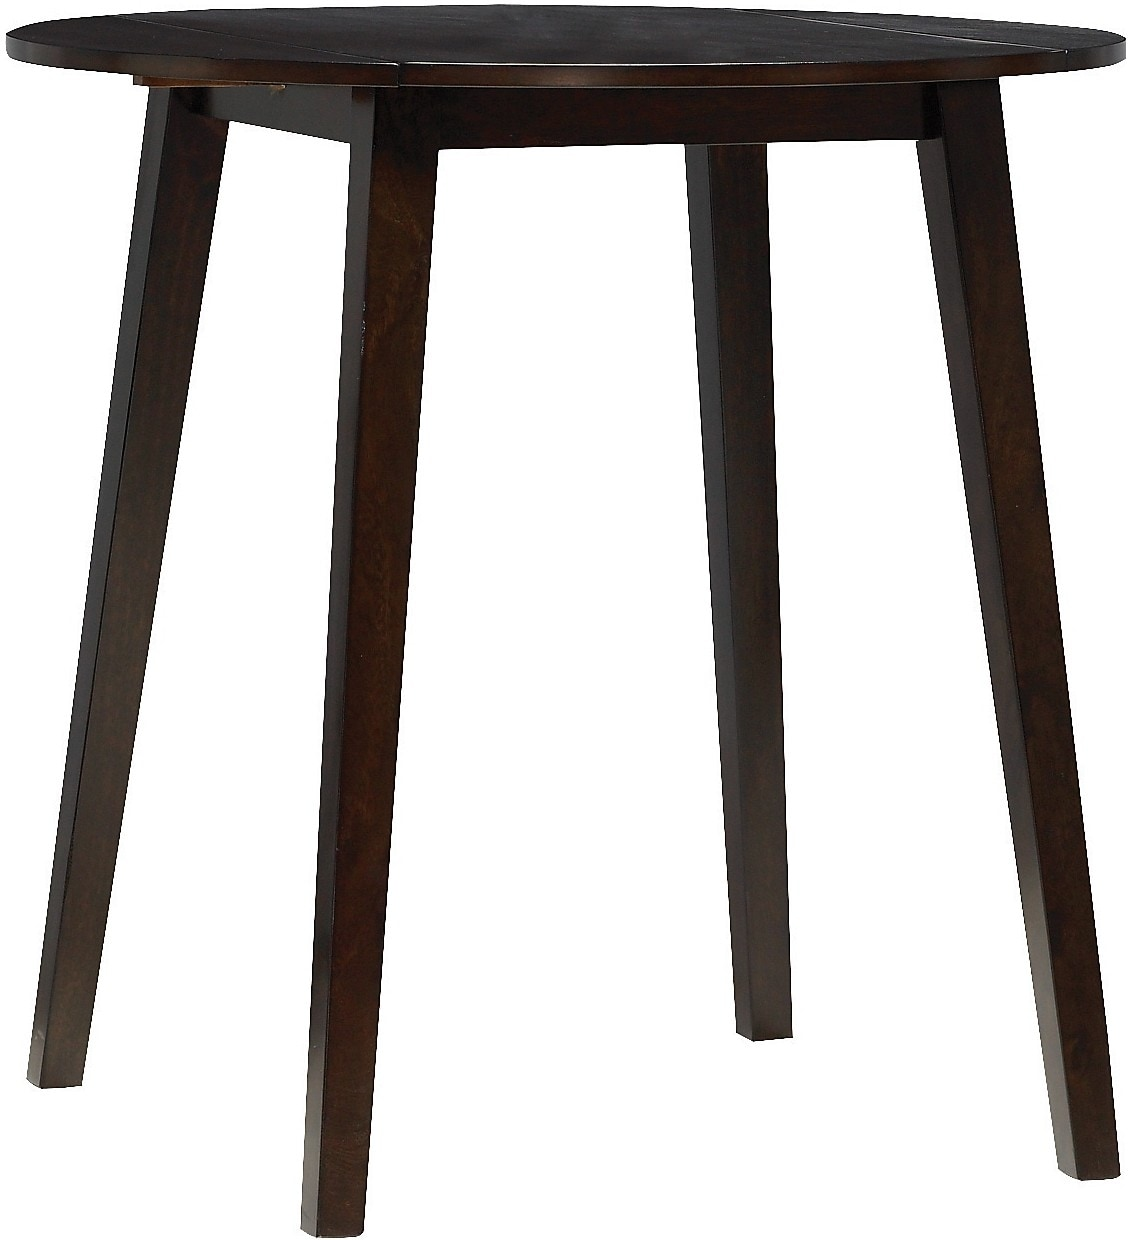 Dakota Counter Height Round Drop Leaf Table United  : 336066 from www.ufw.com size 1128 x 1240 jpeg 110kB